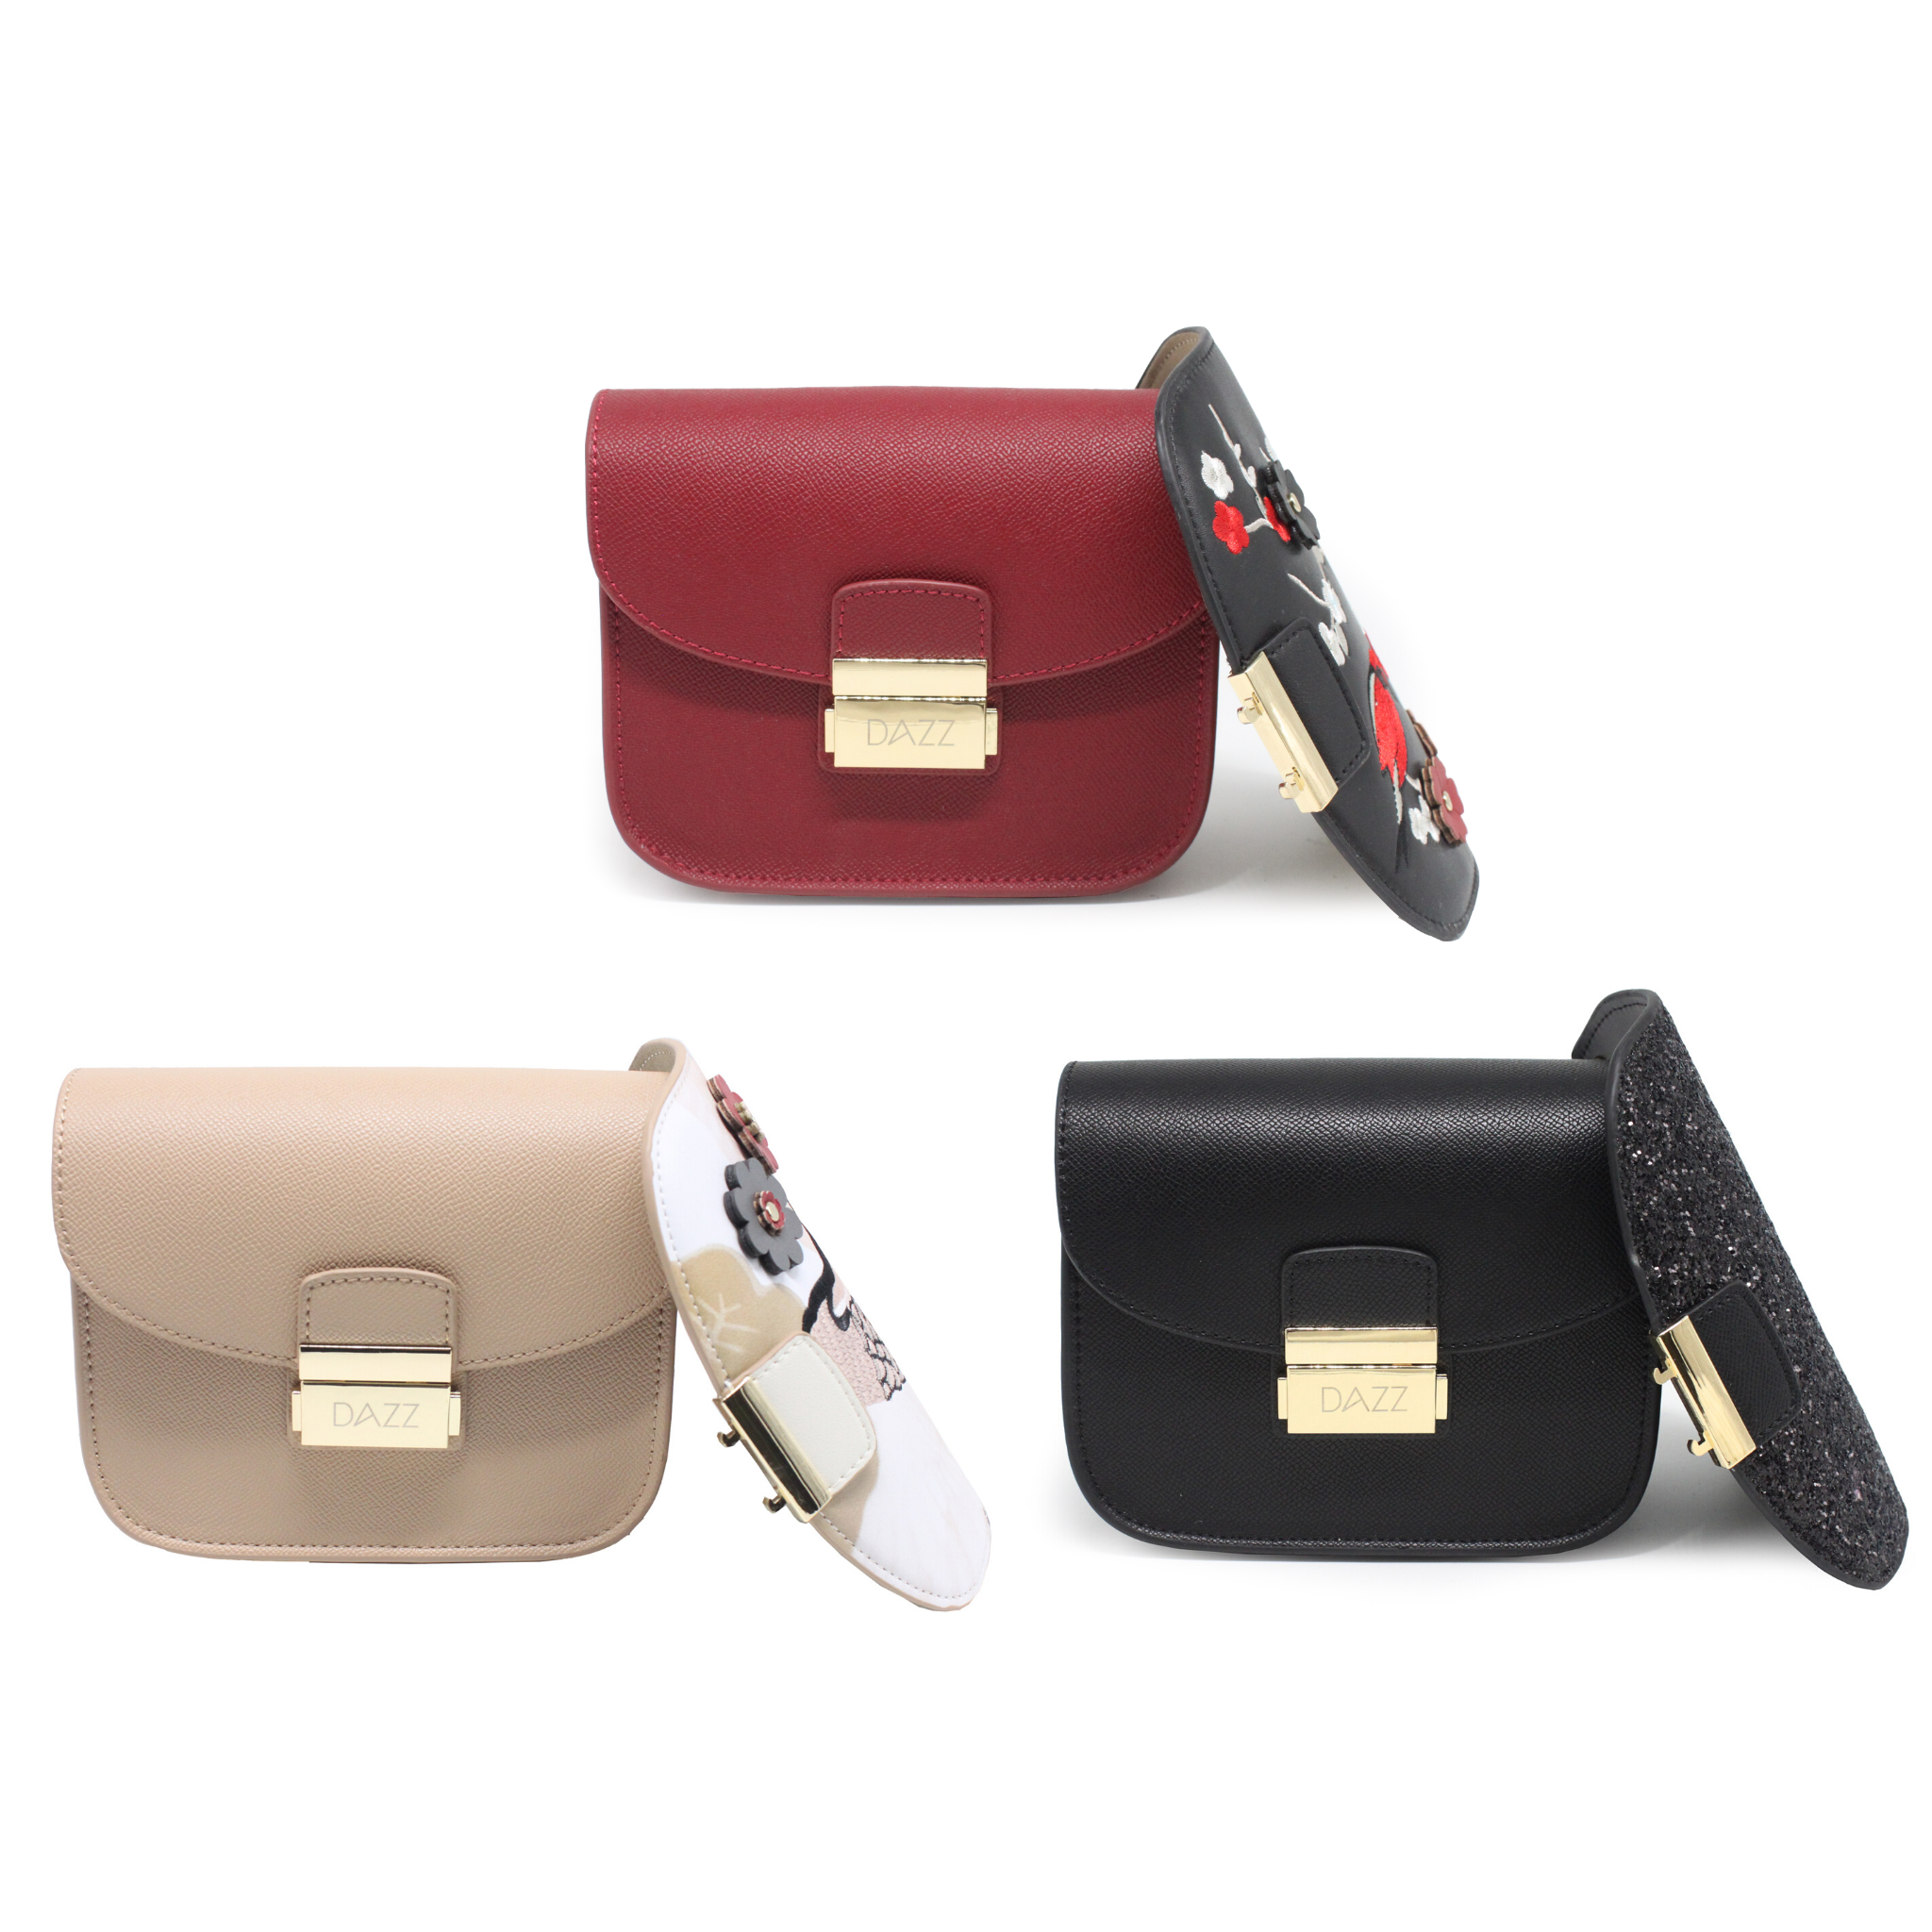 Interchangeable 2-Flaps Crossbody Bag - Red/Nude/Black